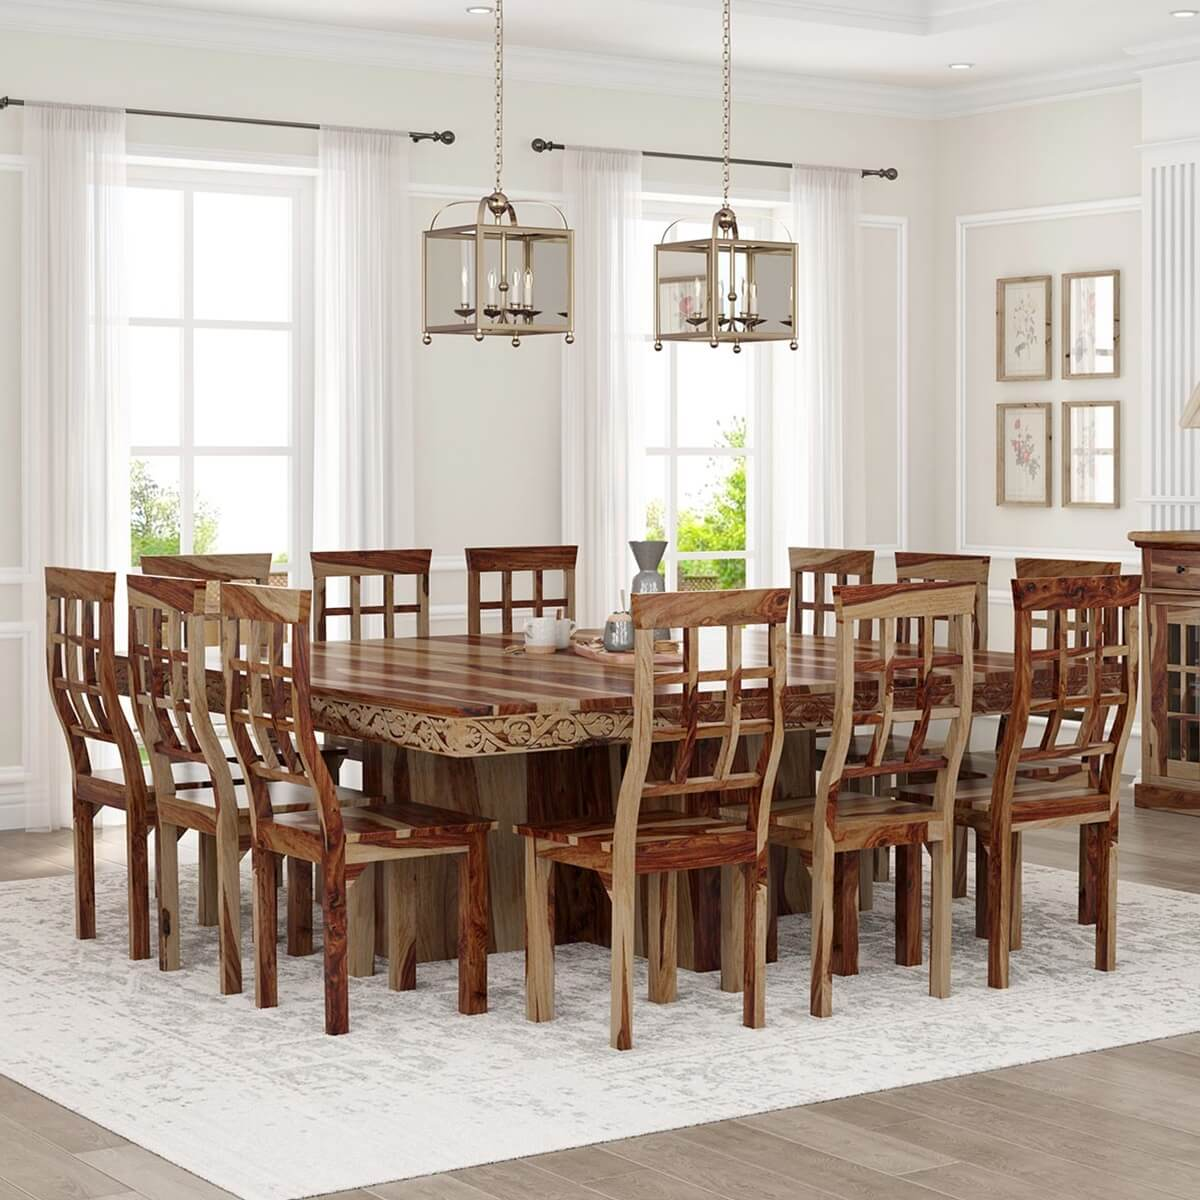 dallas ranch large square dining room table and chair set ForLarge Dining Room Sets